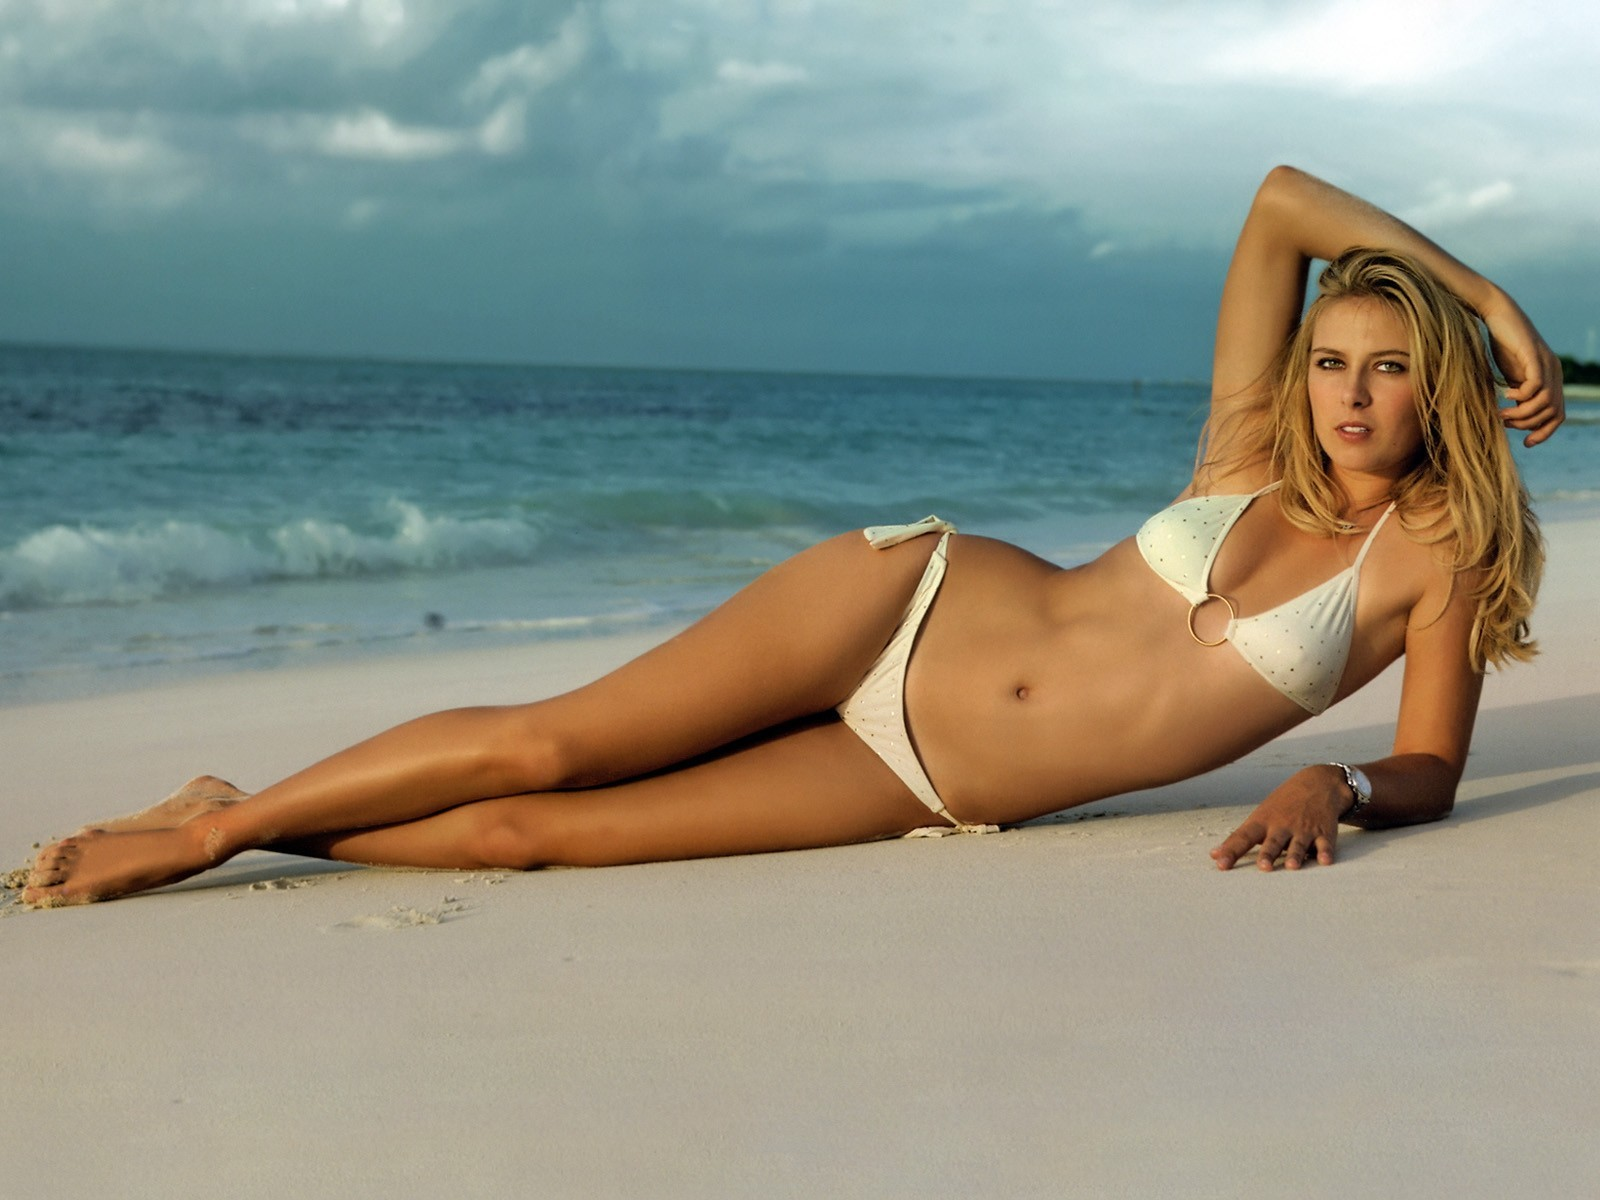 blondes woman ocean bikini HD Wallpaper